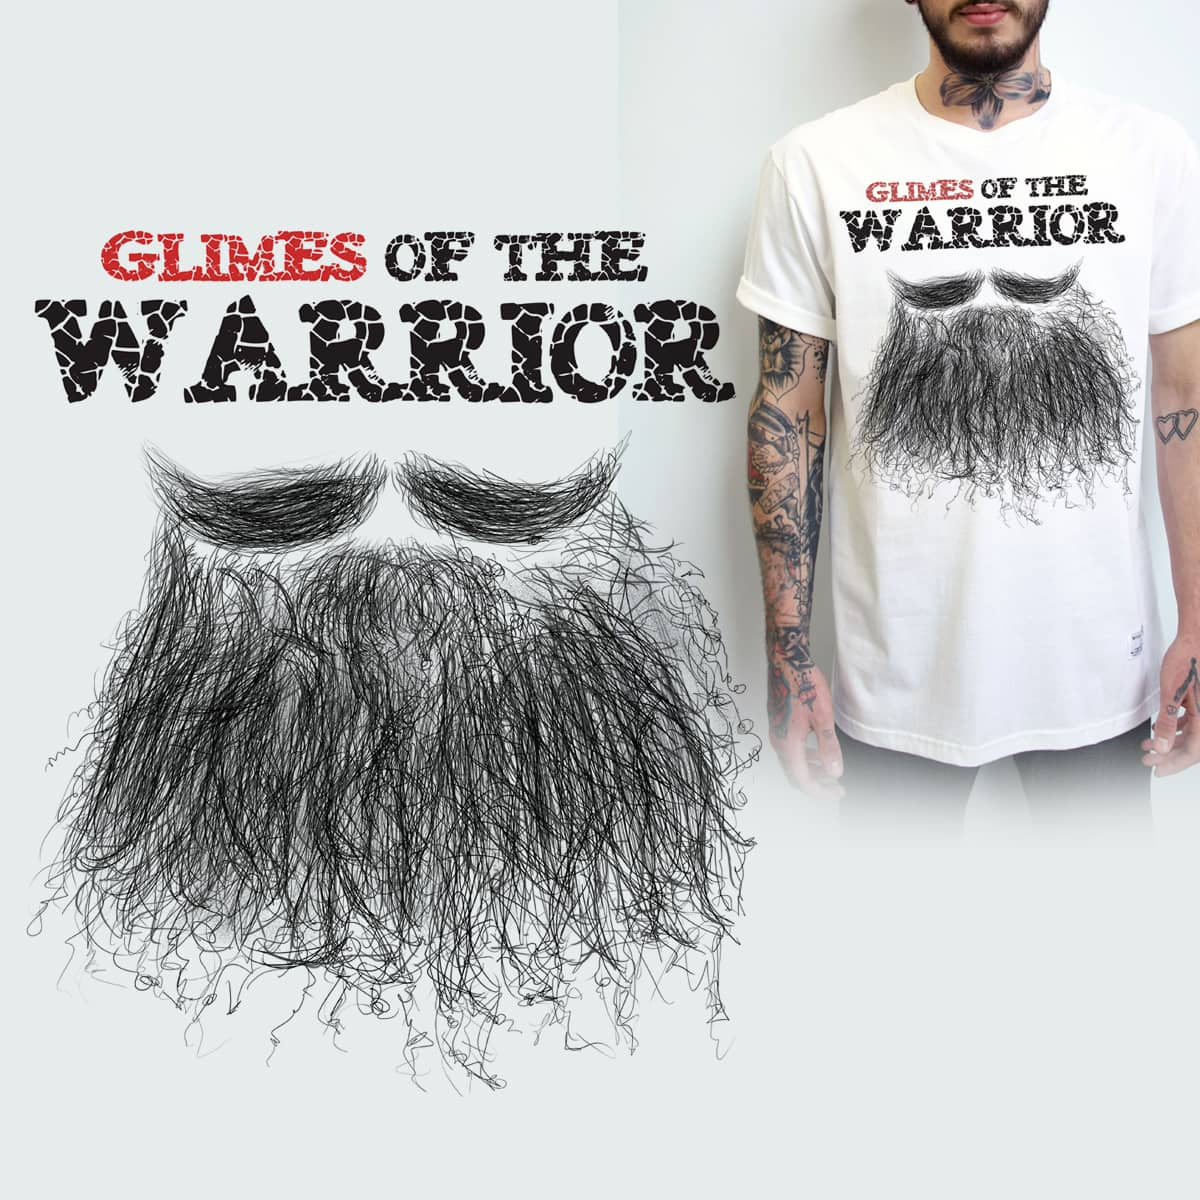 BEARD by Manpreetsingh on Threadless